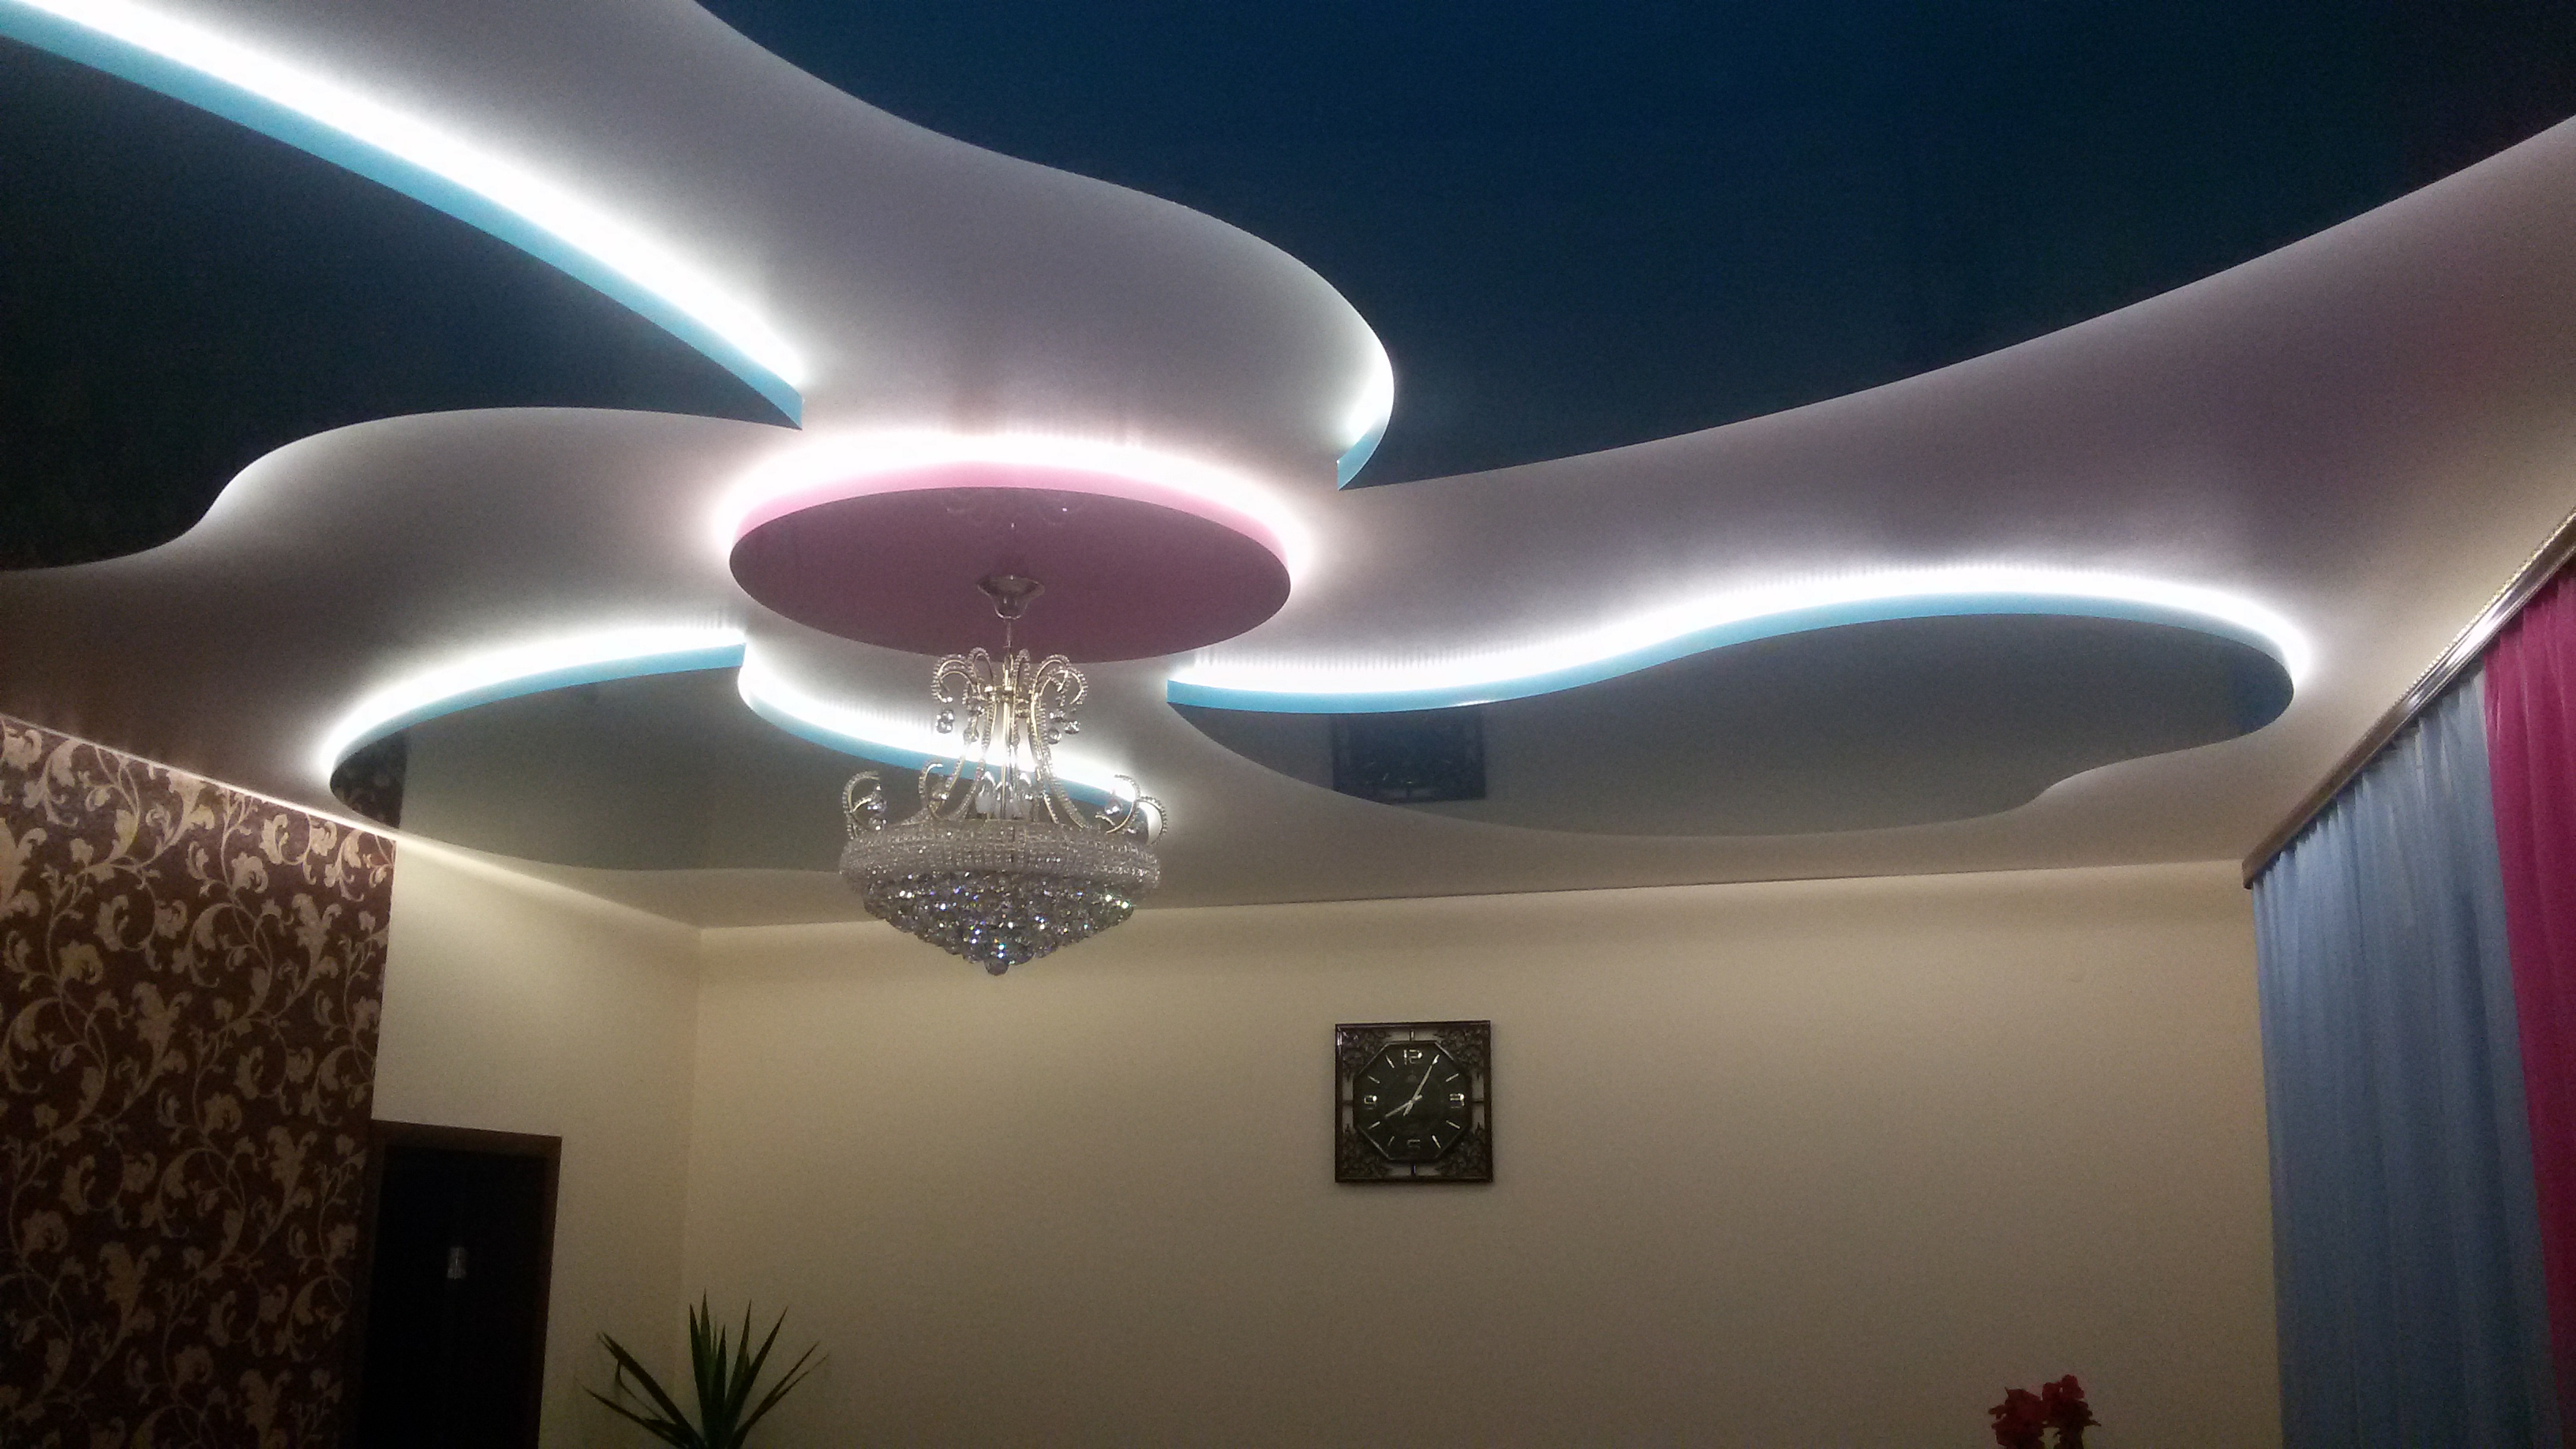 Led Strip Under The Stretch Ceiling 45 Photos Mounting The Diode Backlight How To Make And How To Install The Tape On The Ceiling